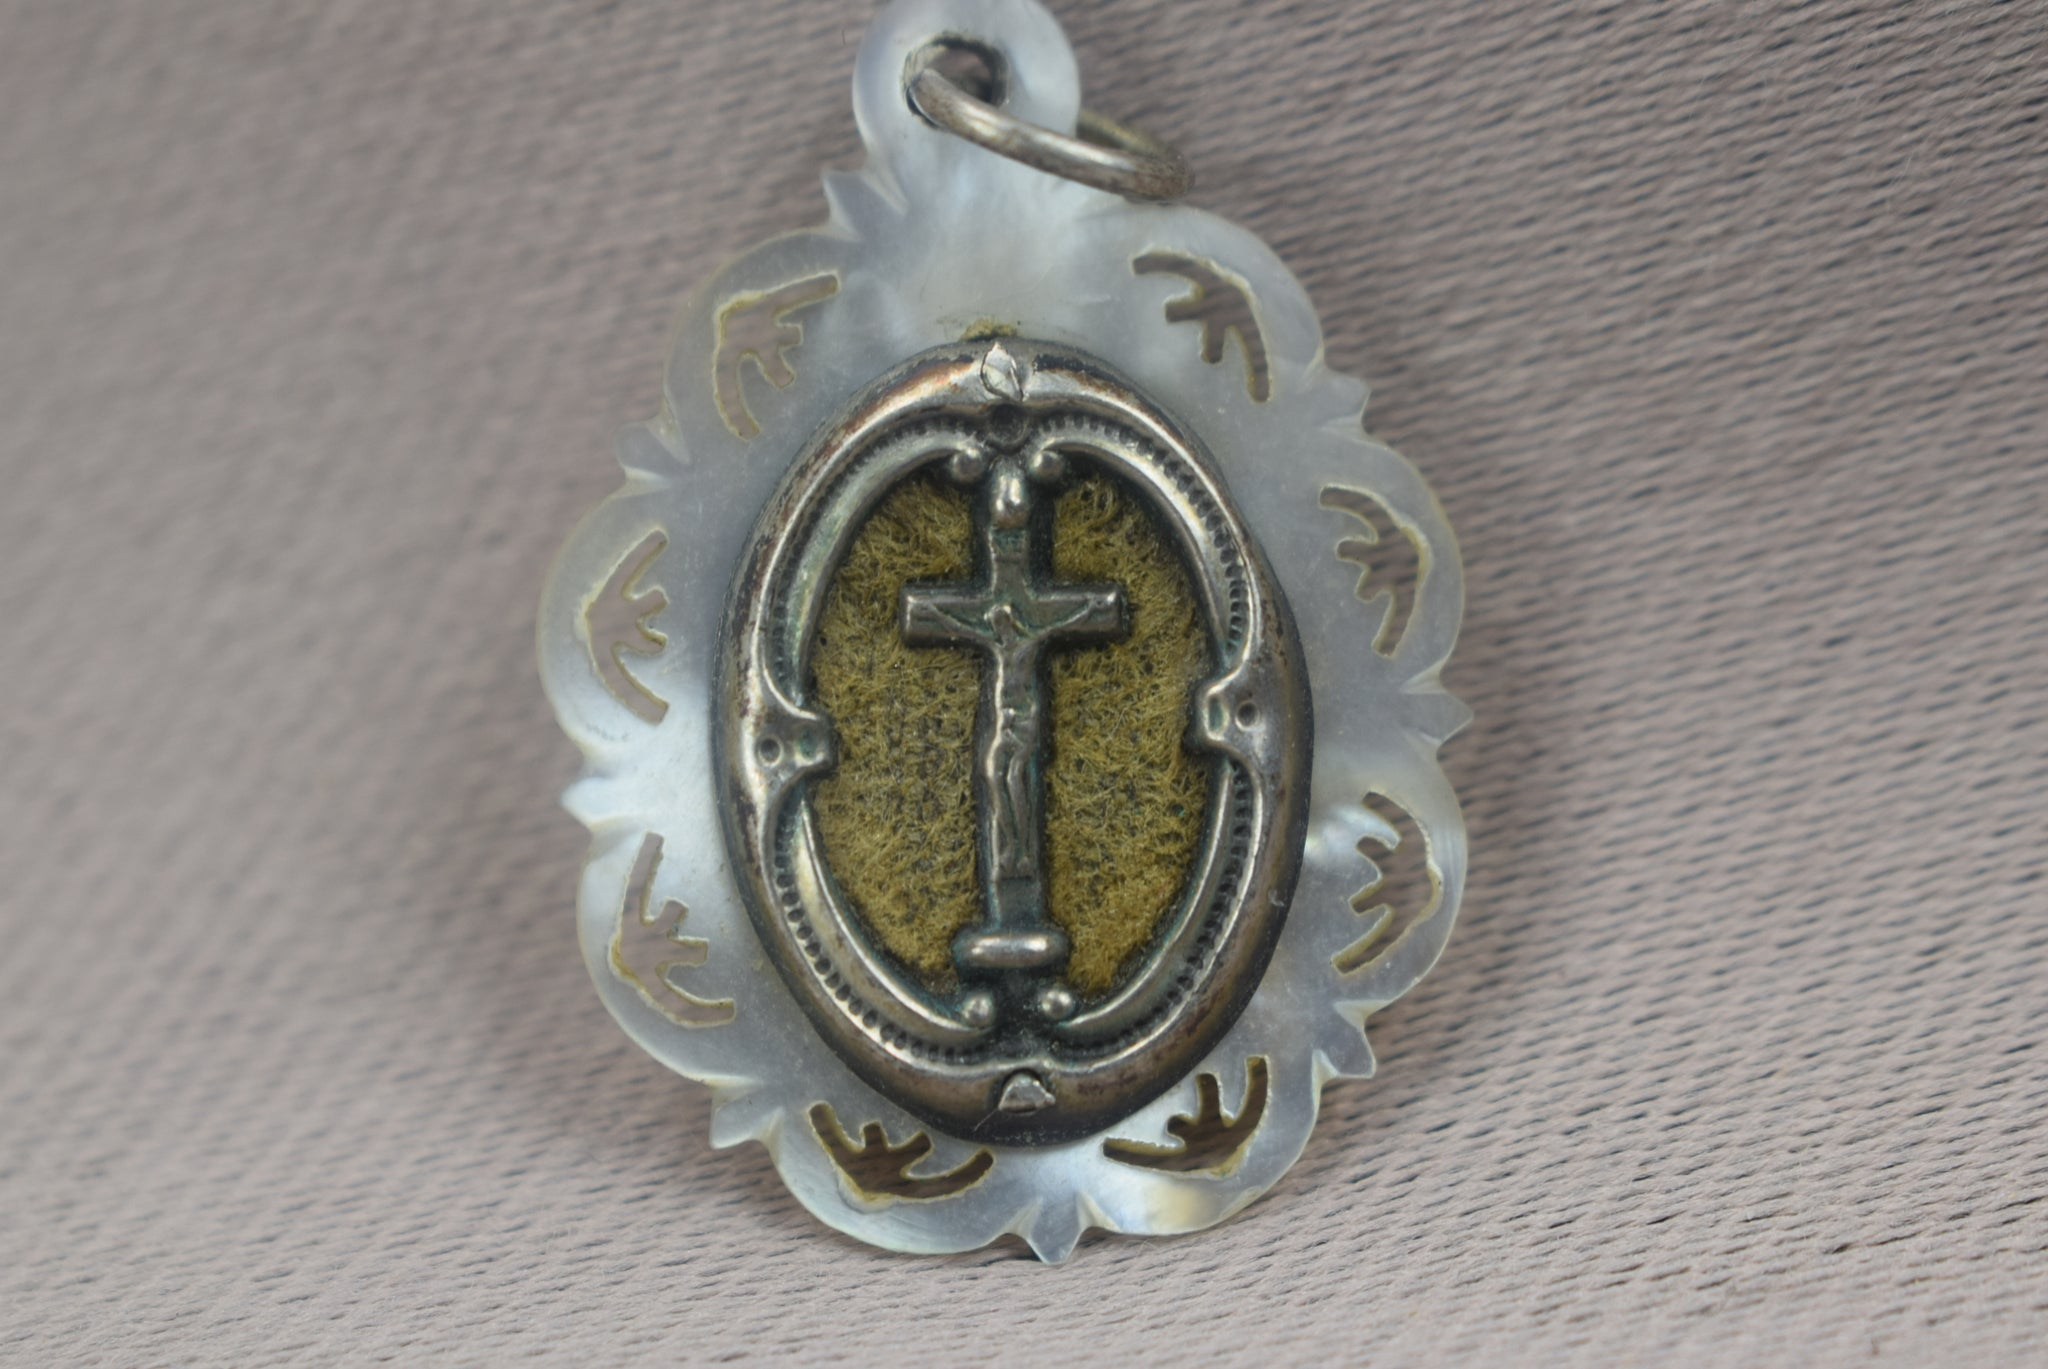 Religious Carved Mother of Pearl Miraculous Medal, French Antique 1830 Virgin Mary Pendant, Jesus Crucifix Medal, Sterling Silver Medal